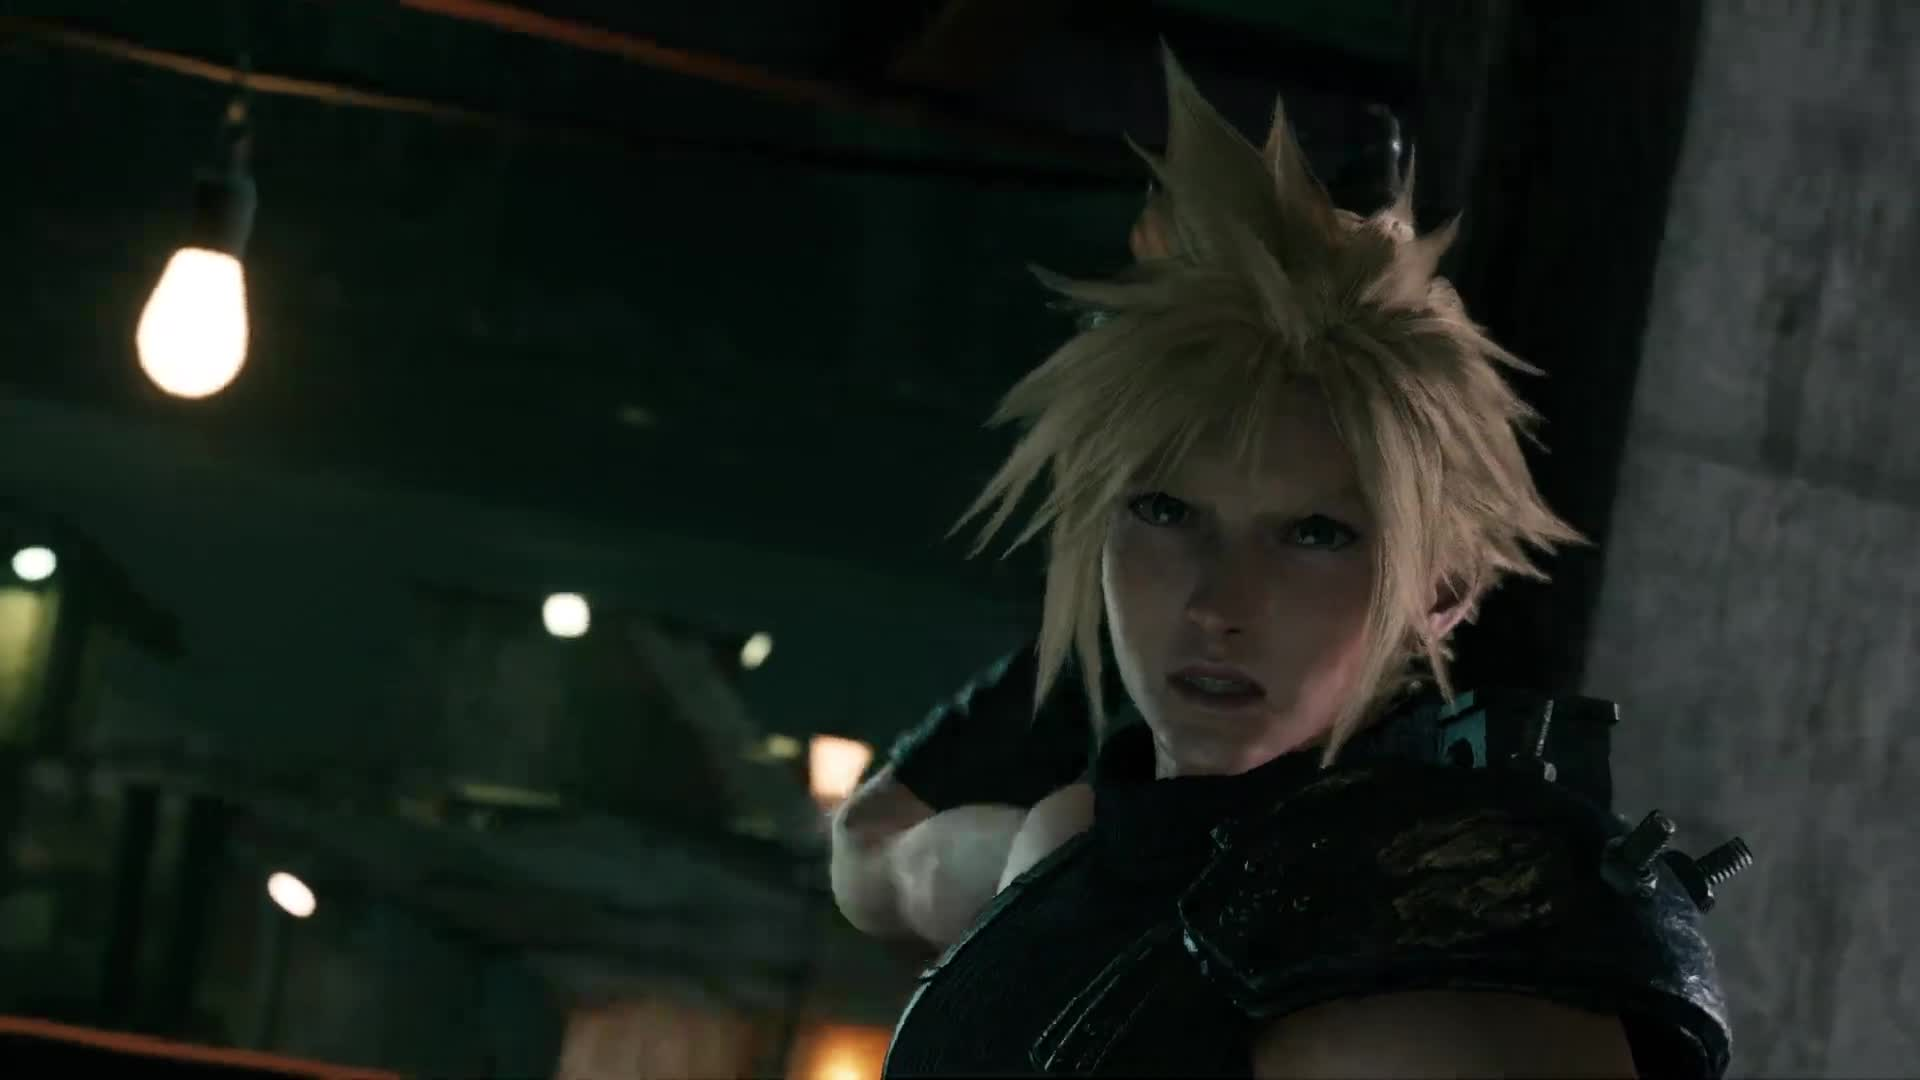 Final Fantasy 7 Remake - Tokyo Game Show 2019 Trailer [HD] screen capture